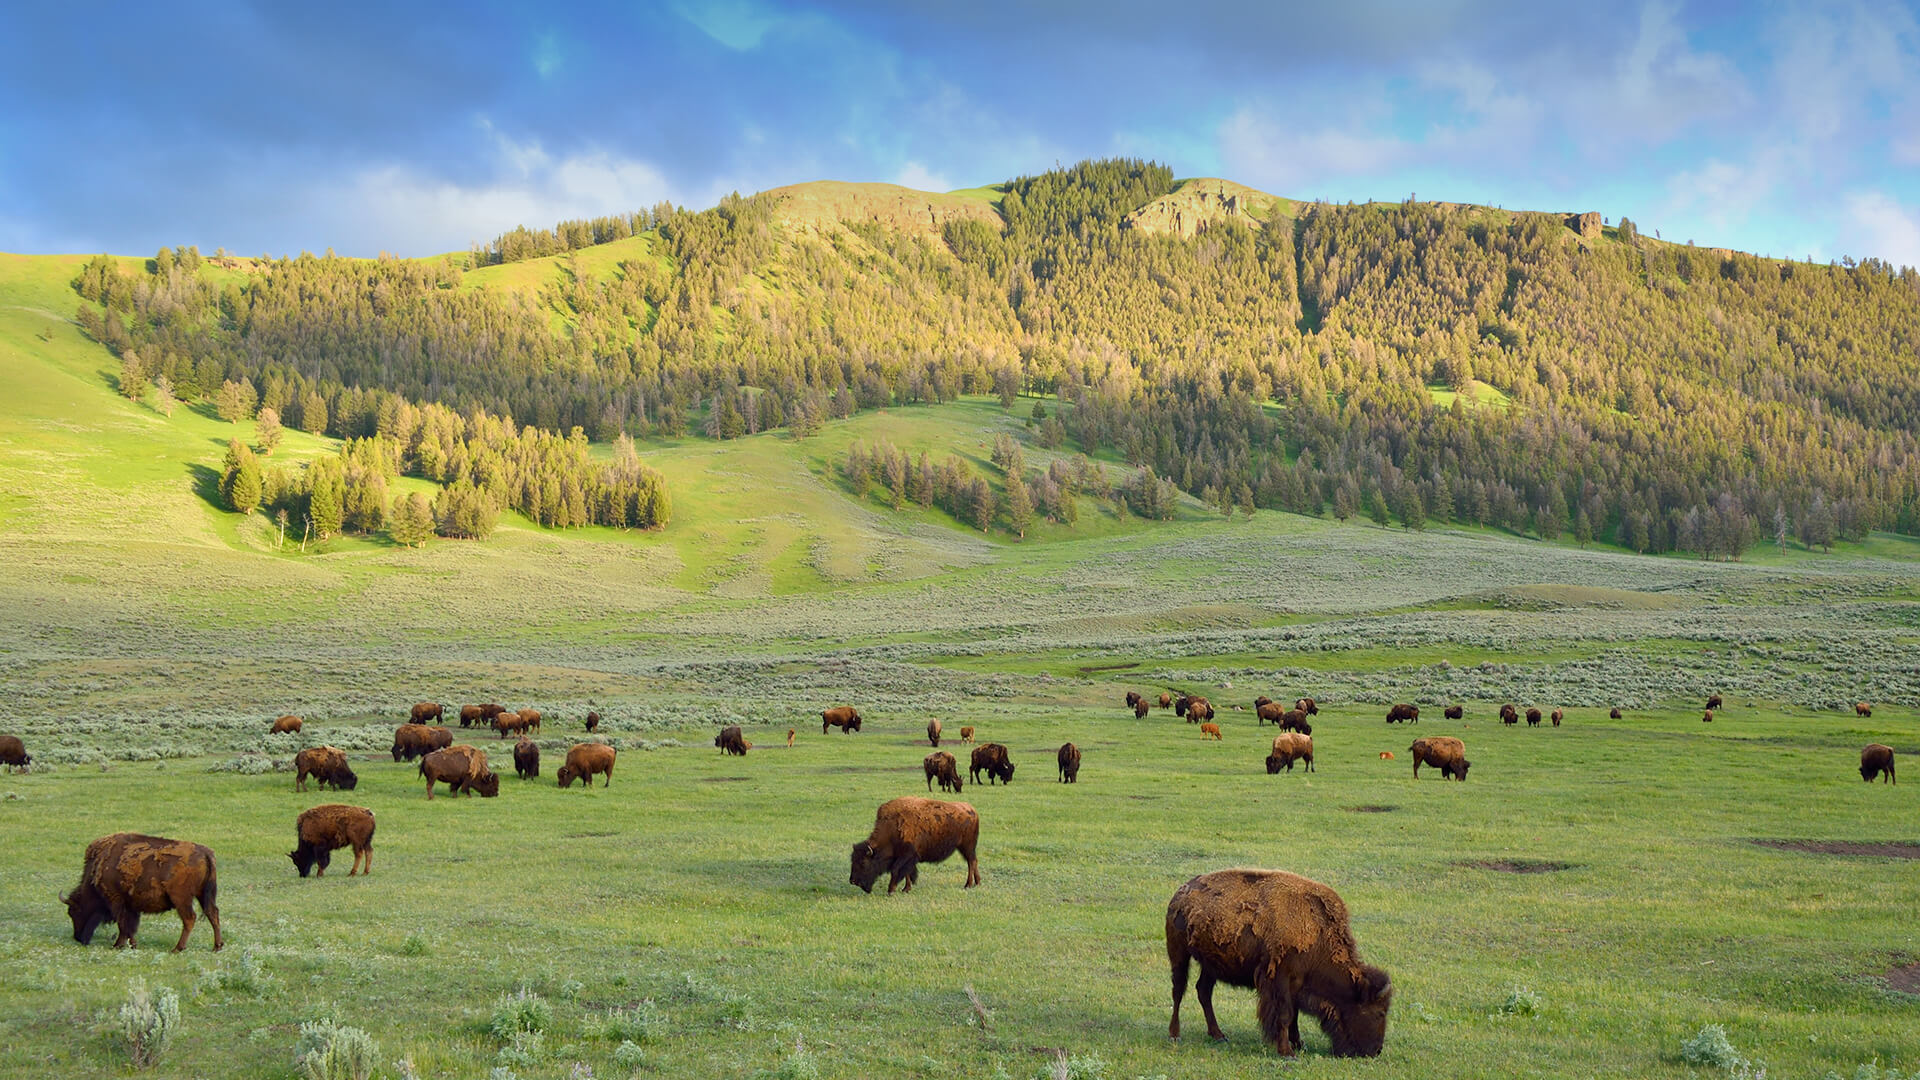 Wild bison graze in a large green field in Yosemite